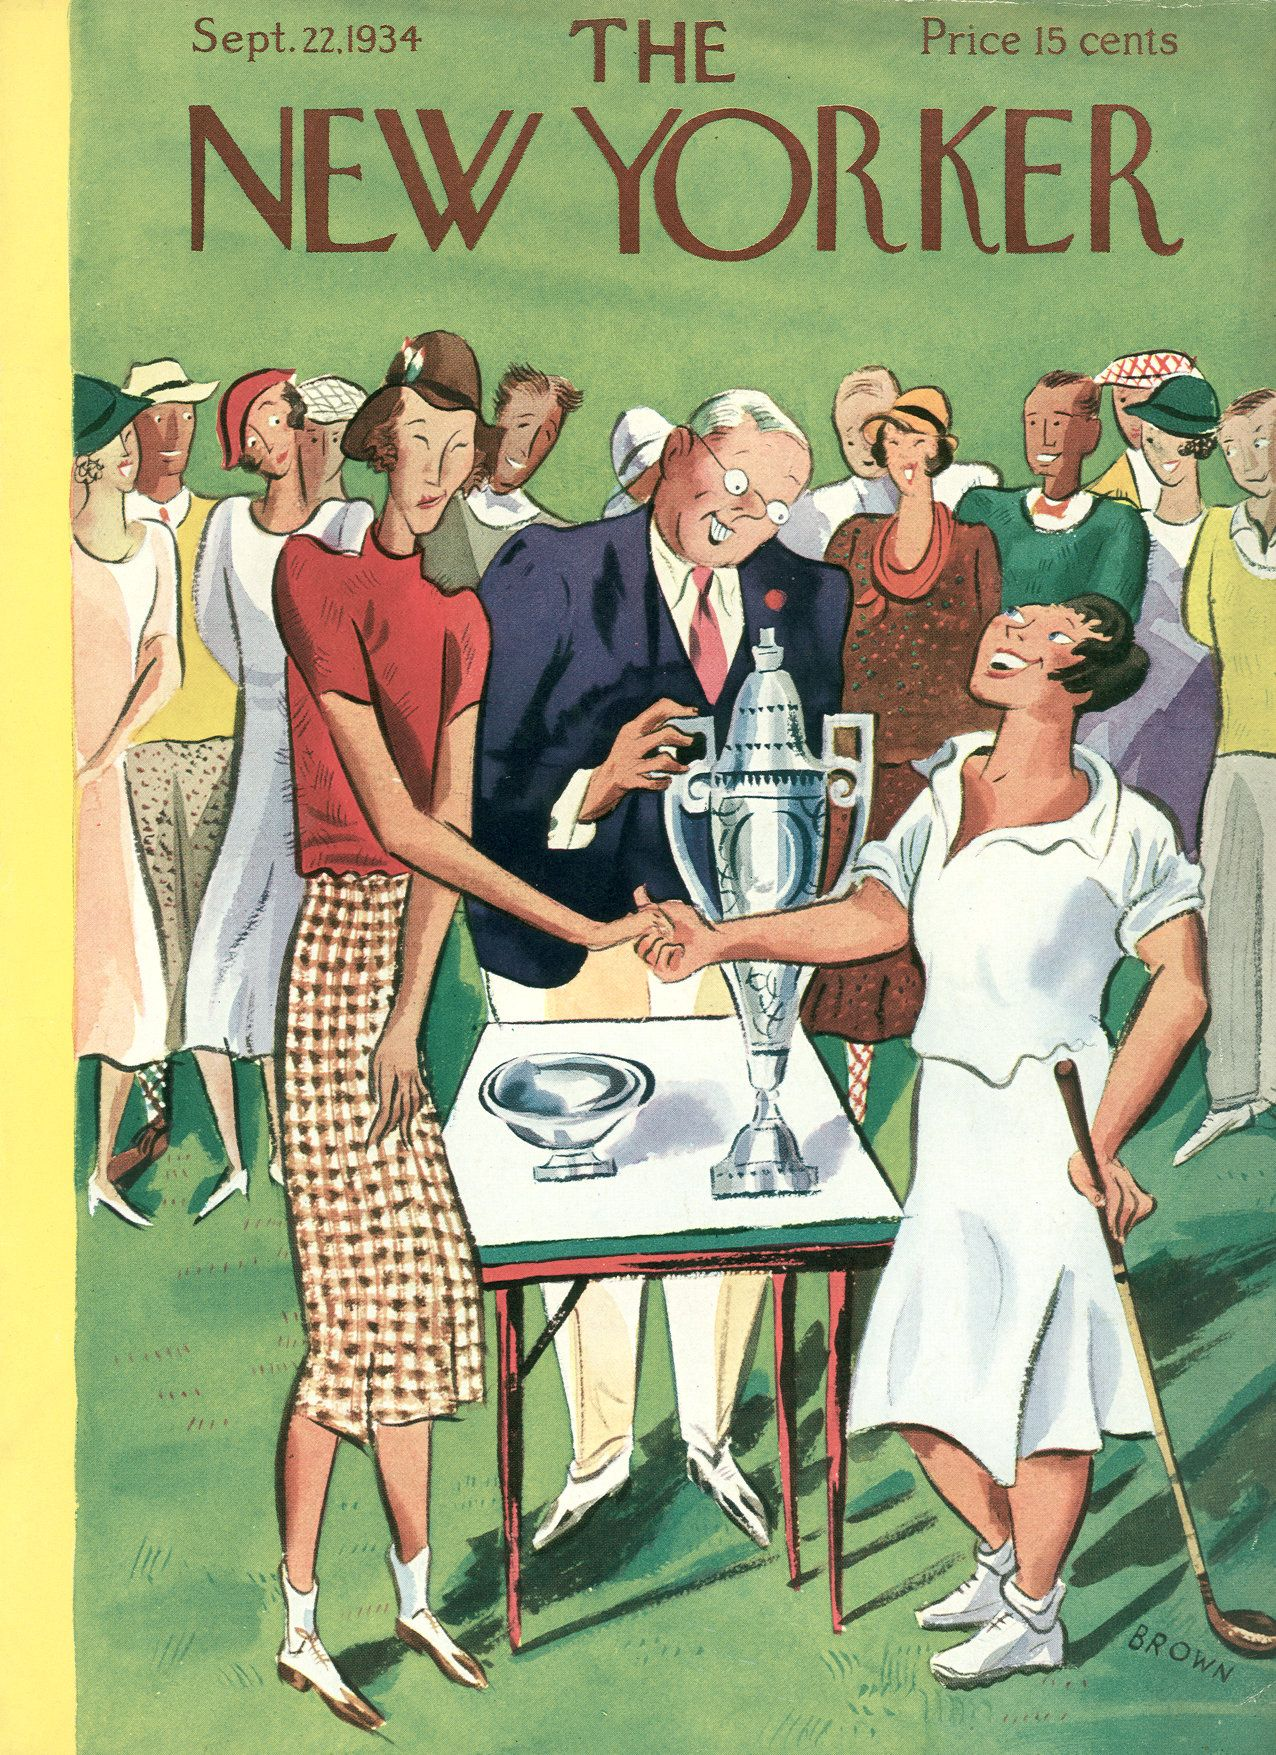 The New Yorker - Saturday, September 22, 1934 - Issue # 501 - Vol. 10 - N° 32 - Cover by : Harry Brown